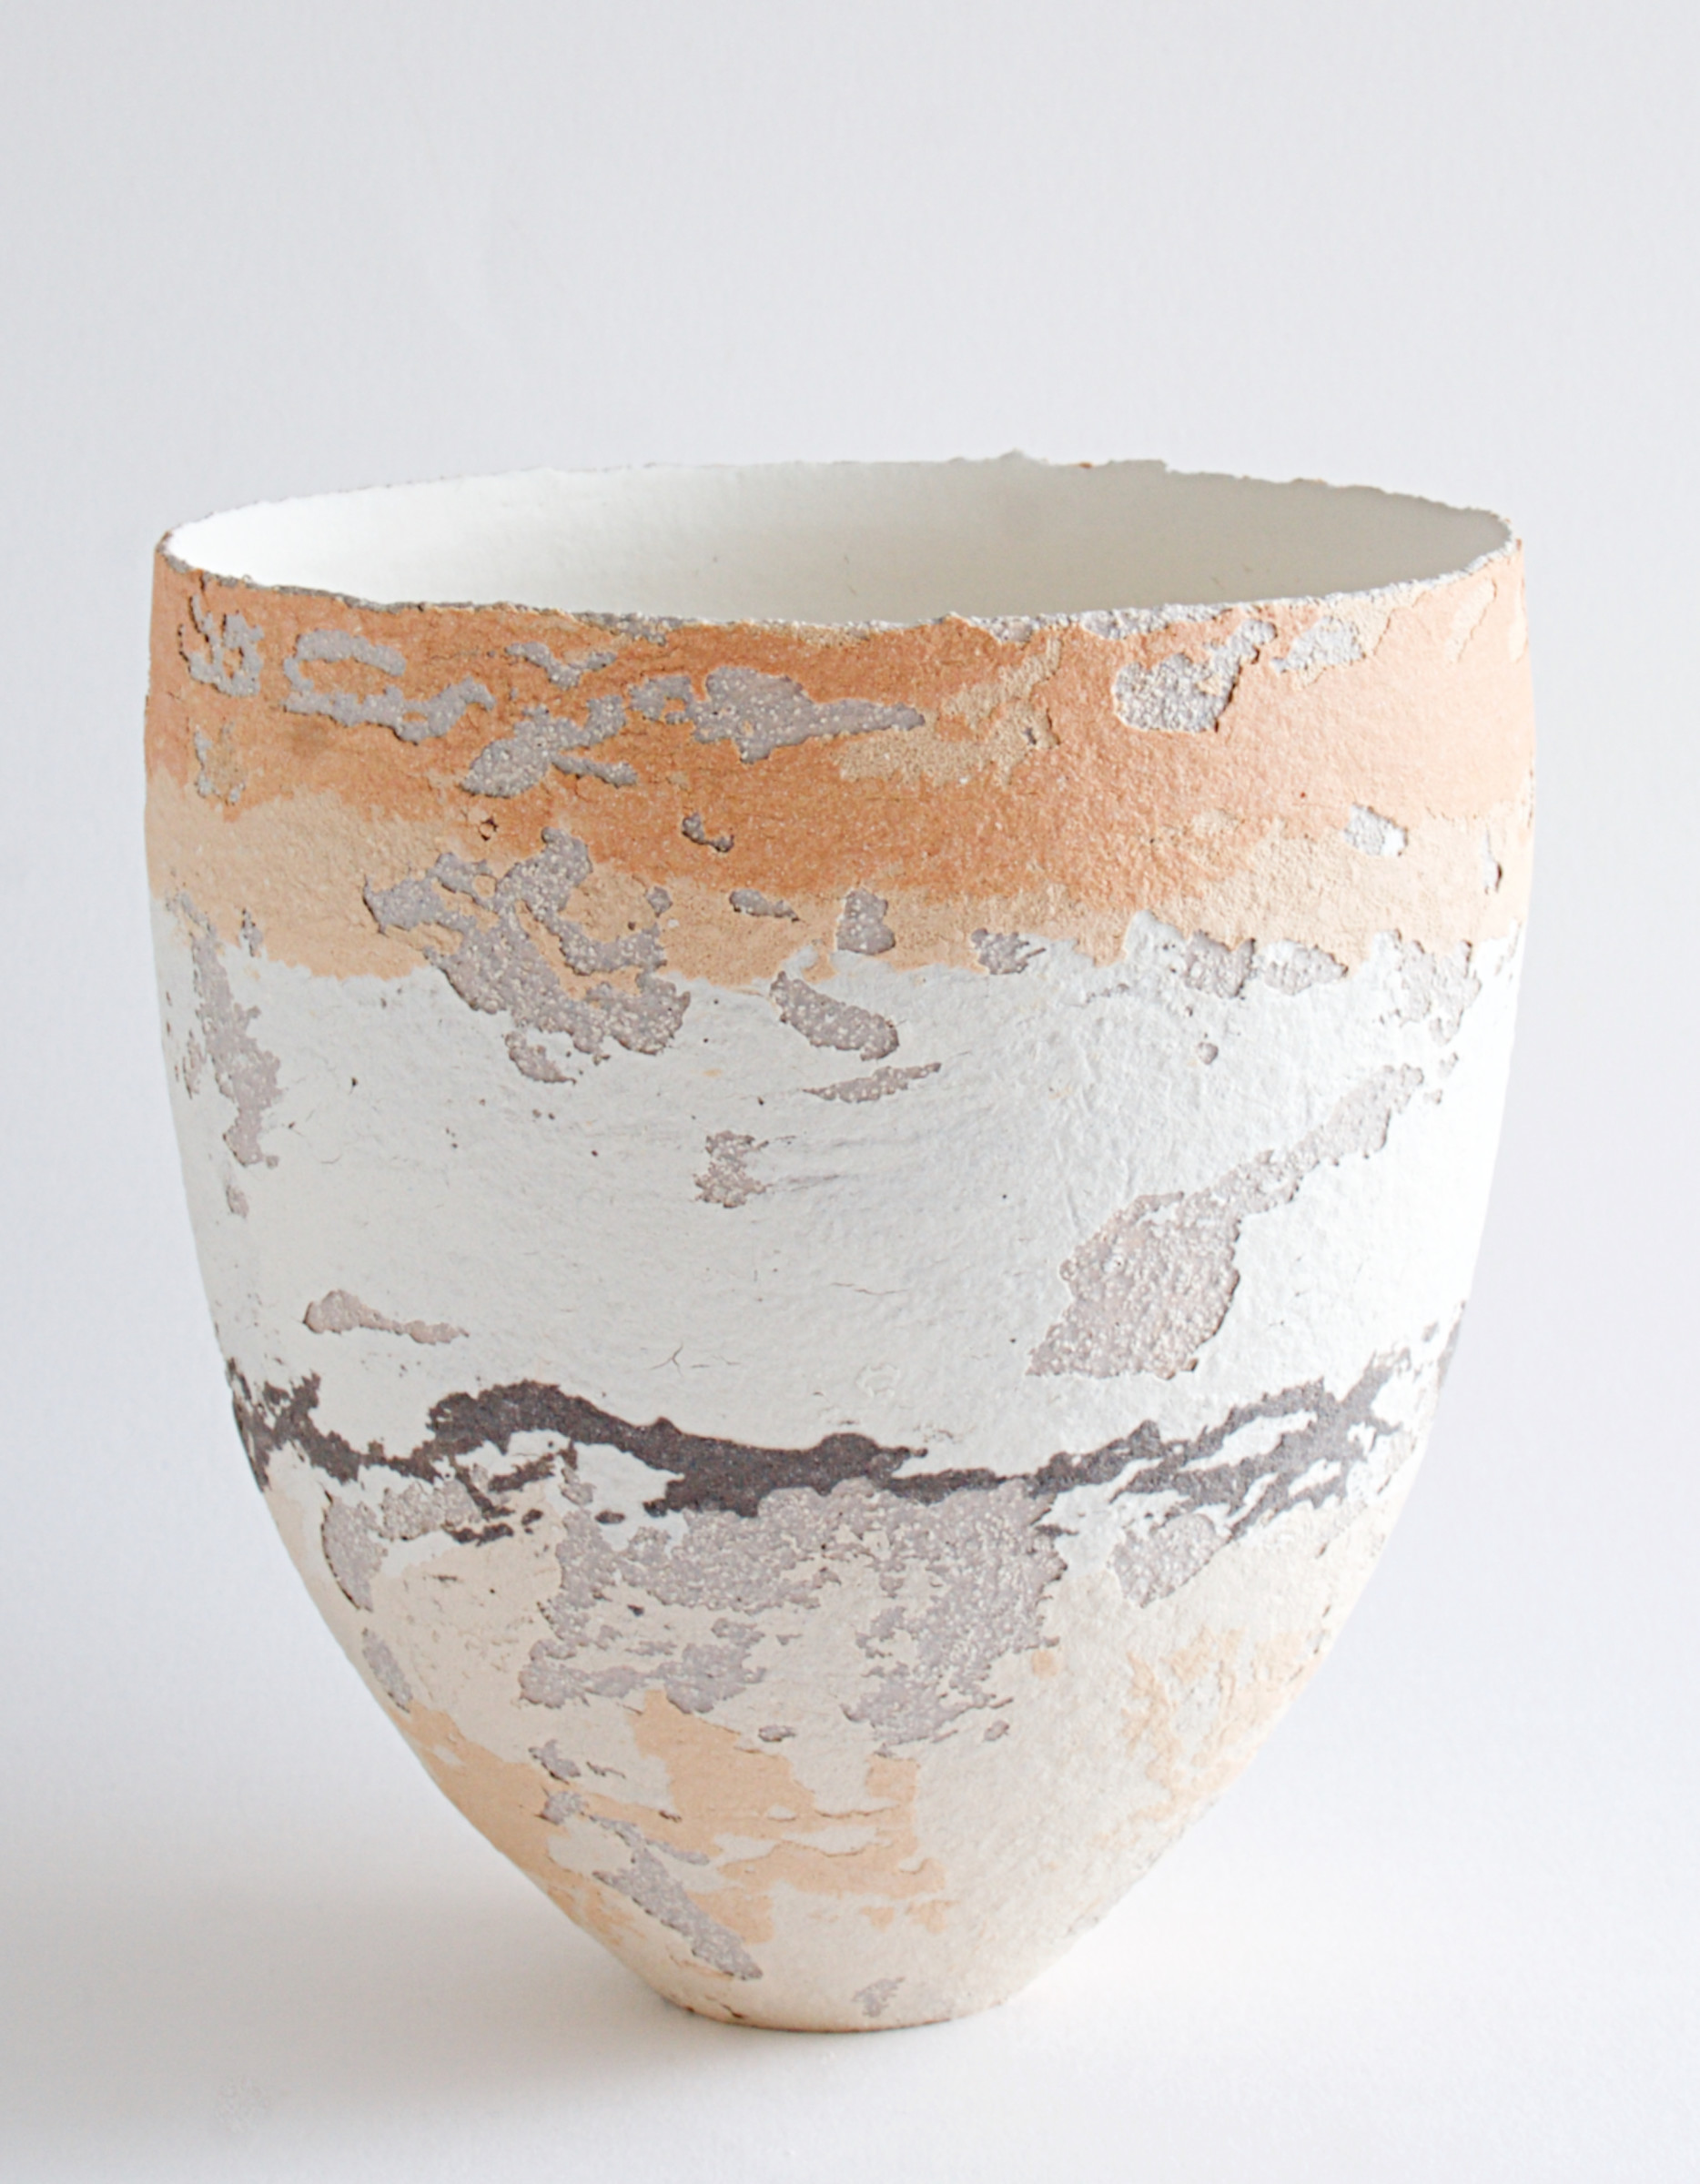 "<span class=""link fancybox-details-link""><a href=""/artists/79-clare-conrad/works/6937-clare-conrad-vessel-2020/"">View Detail Page</a></span><div class=""artist""><strong>Clare Conrad</strong></div> <div class=""title""><em>Vessel</em>, 2020</div> <div class=""medium"">Stoneware</div> <div class=""dimensions"">h. 15.5 cm </div><div class=""copyright_line"">Copyright The Artist</div>"